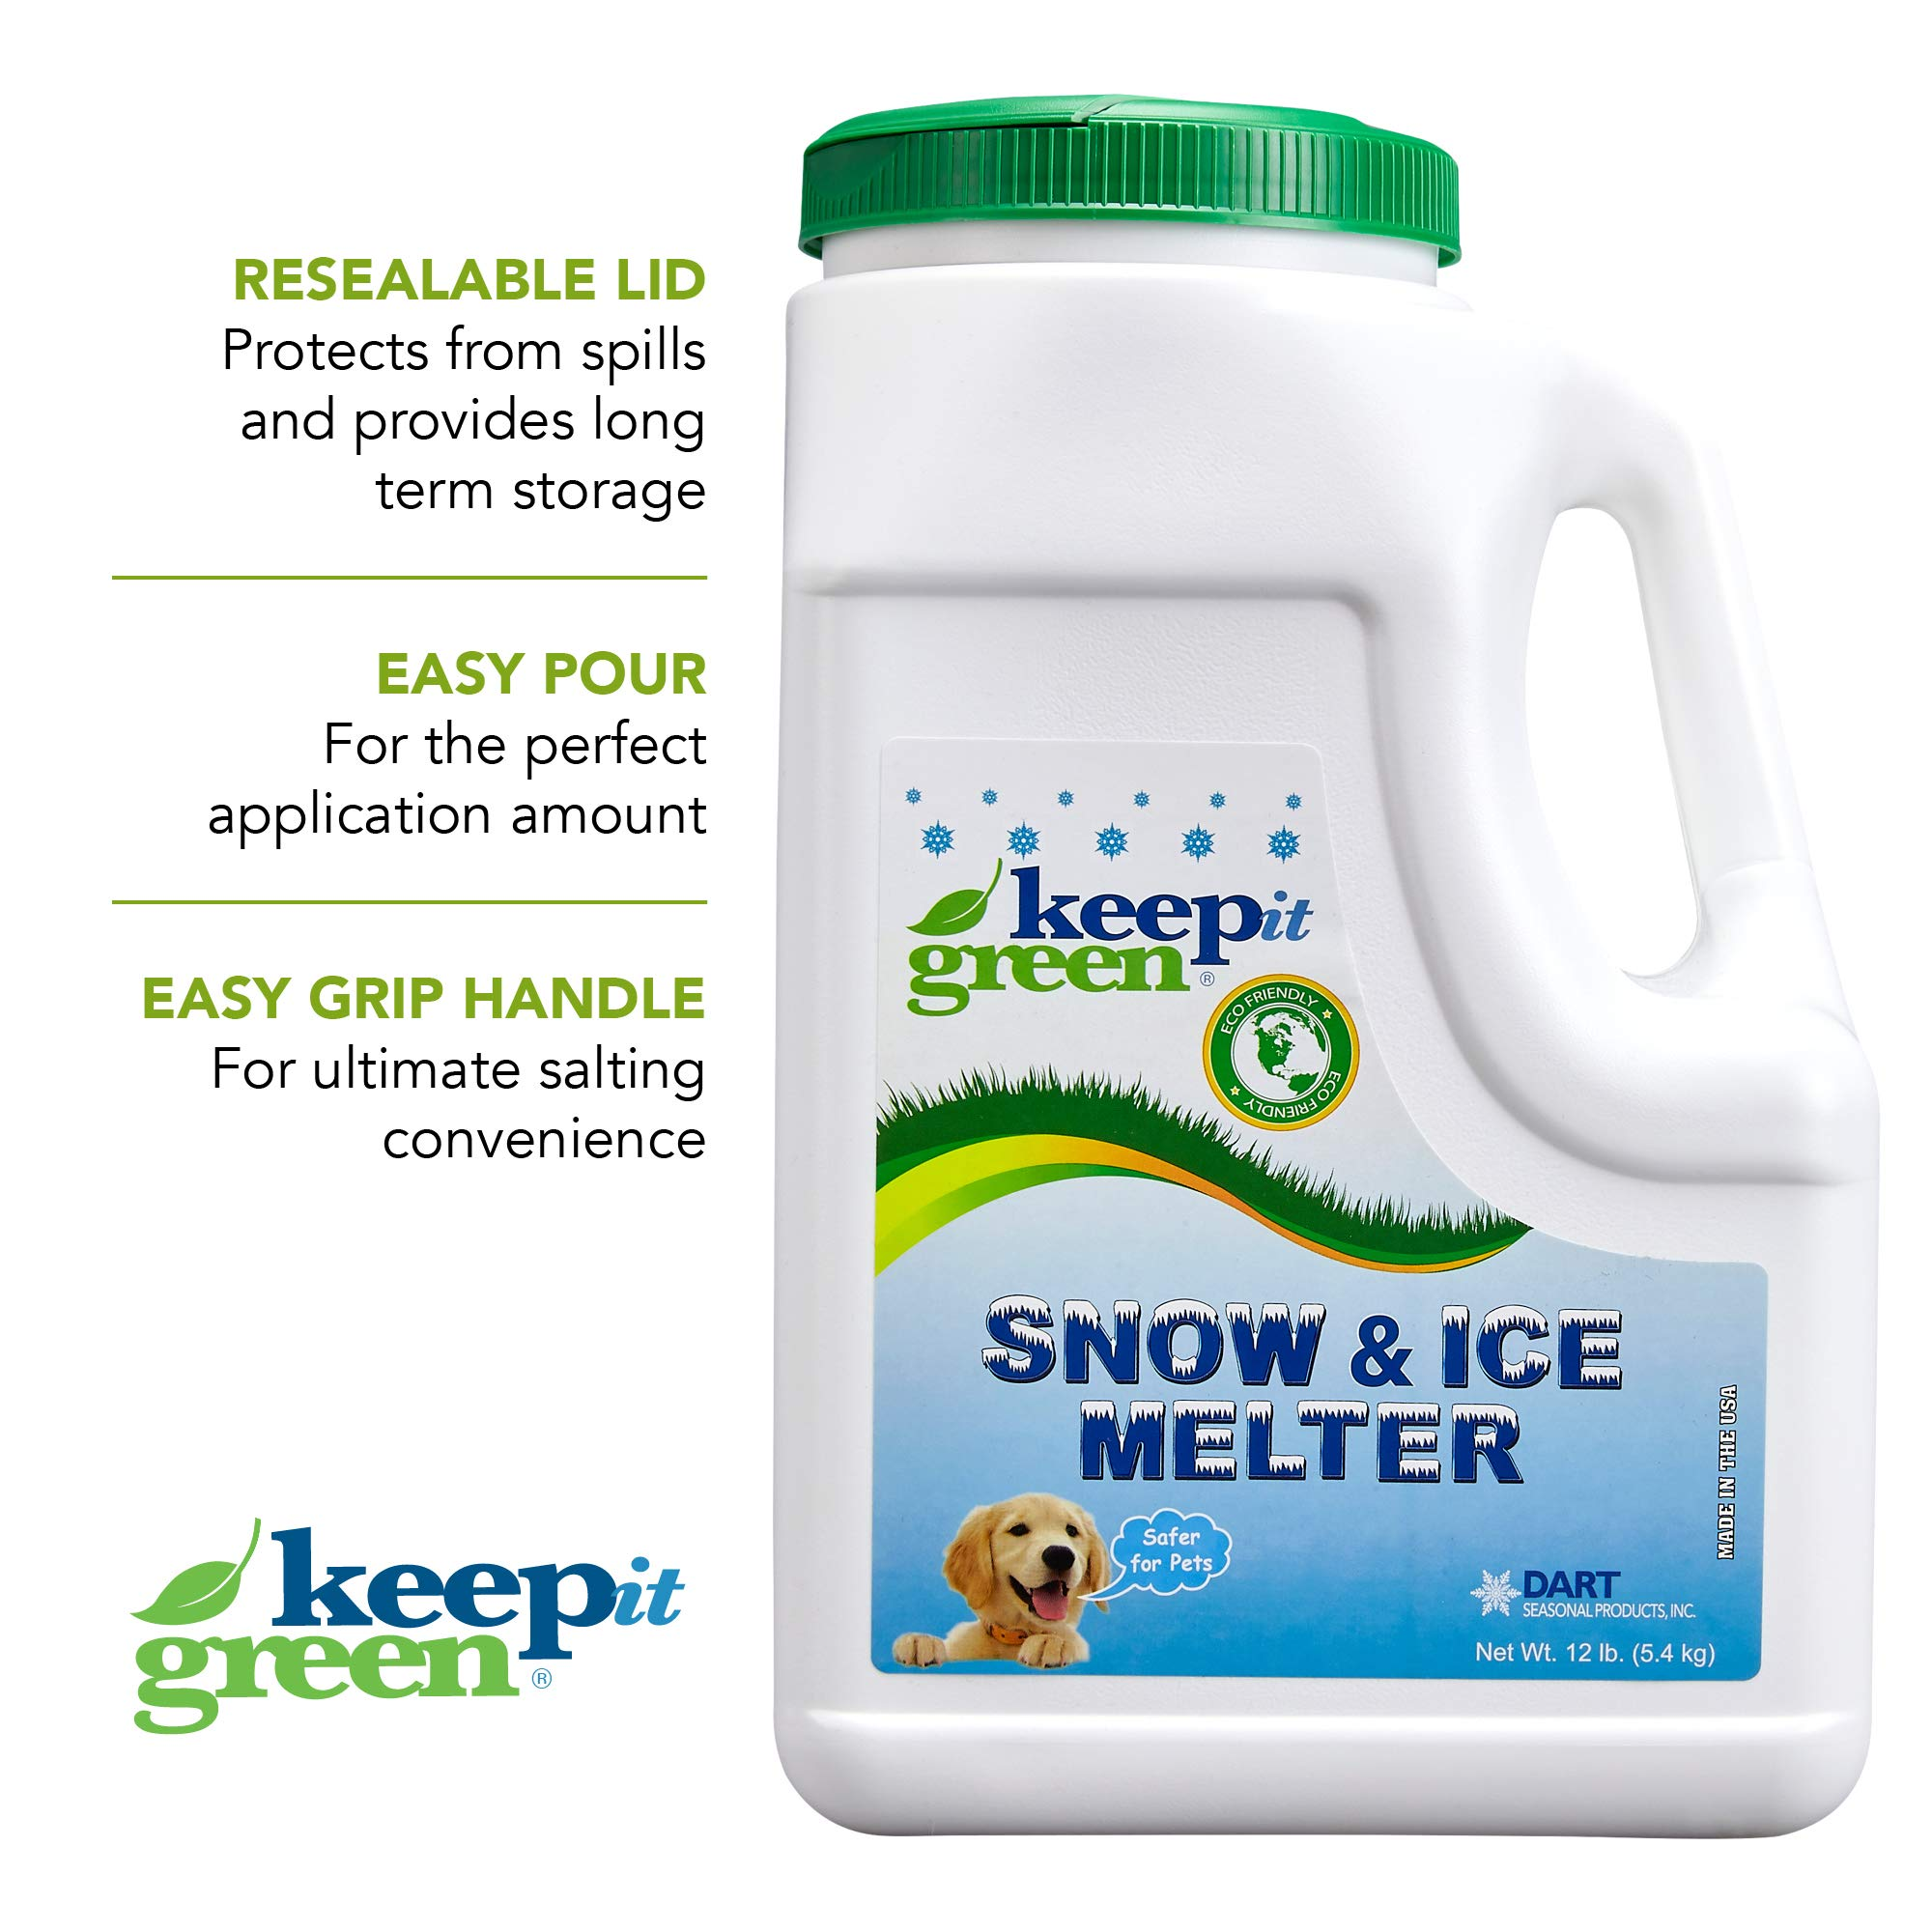 KEEP IT GREEN Nontoxic Snow and Ice Melter - Child and Pet Safe Ice Melt Rock Salt Pellets with Time Release Fertilizer for Grass and Garden - Green Tint (12 Pound Jug) by KEEP IT GREEN